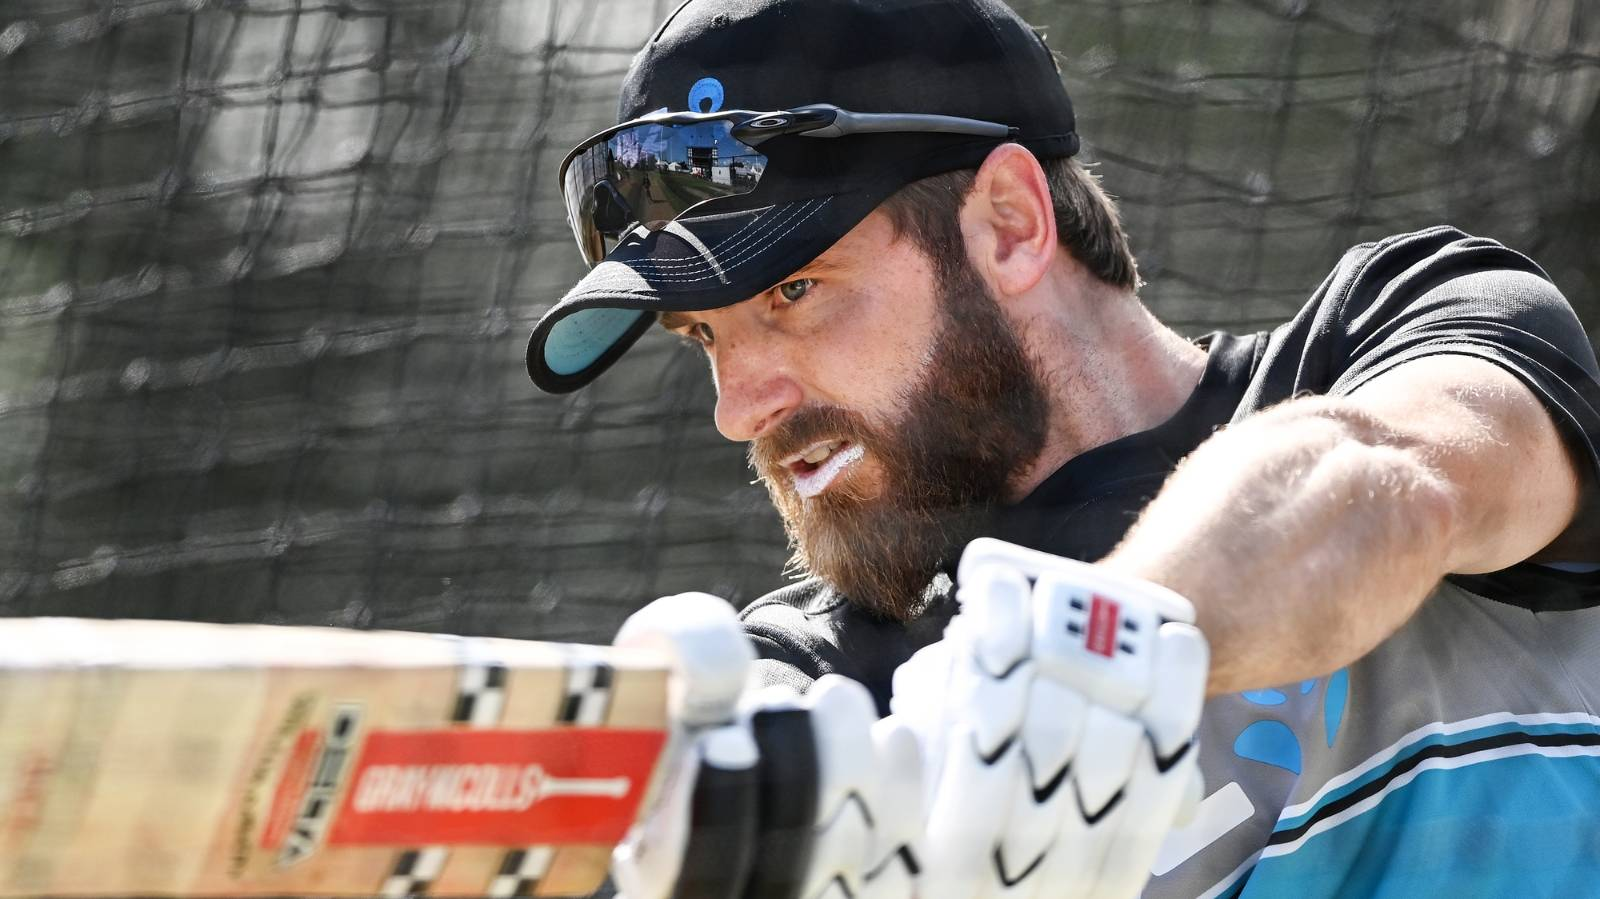 Williamson excited to get going in England ahead of WTC final